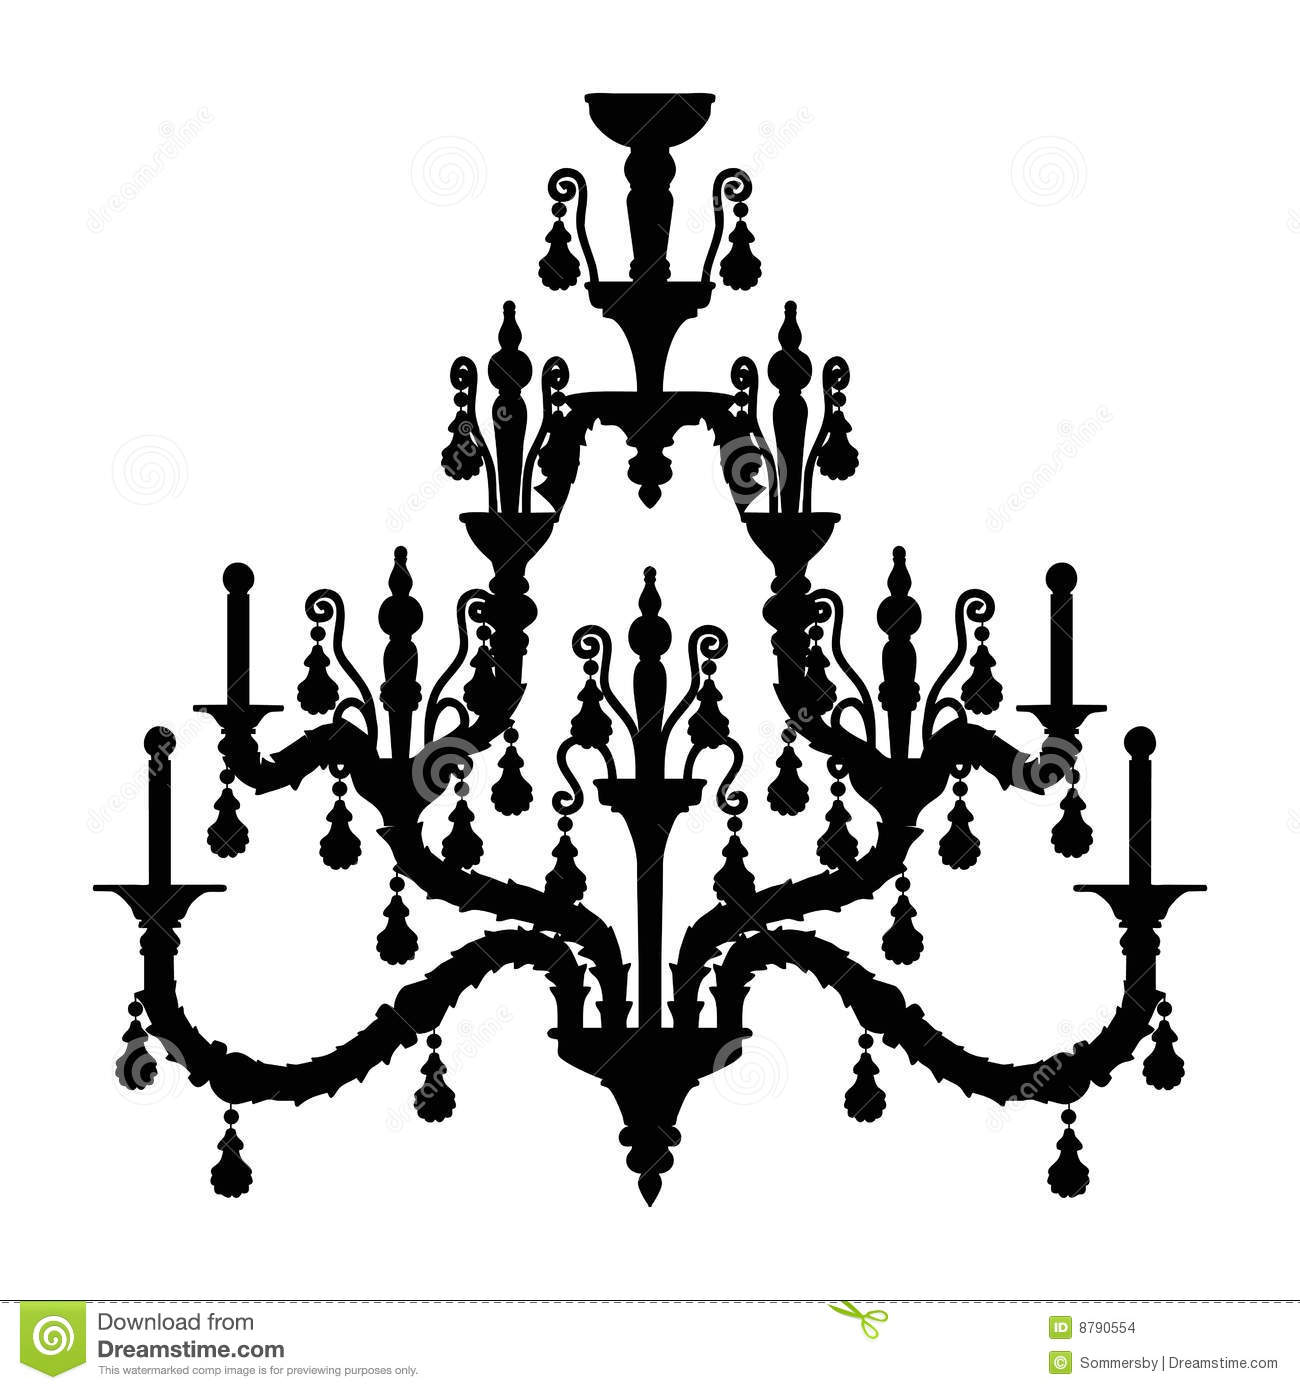 Glass Lamp Vector Silhouette Of Luxury Chandelier Stock Vector - Image: 8790554